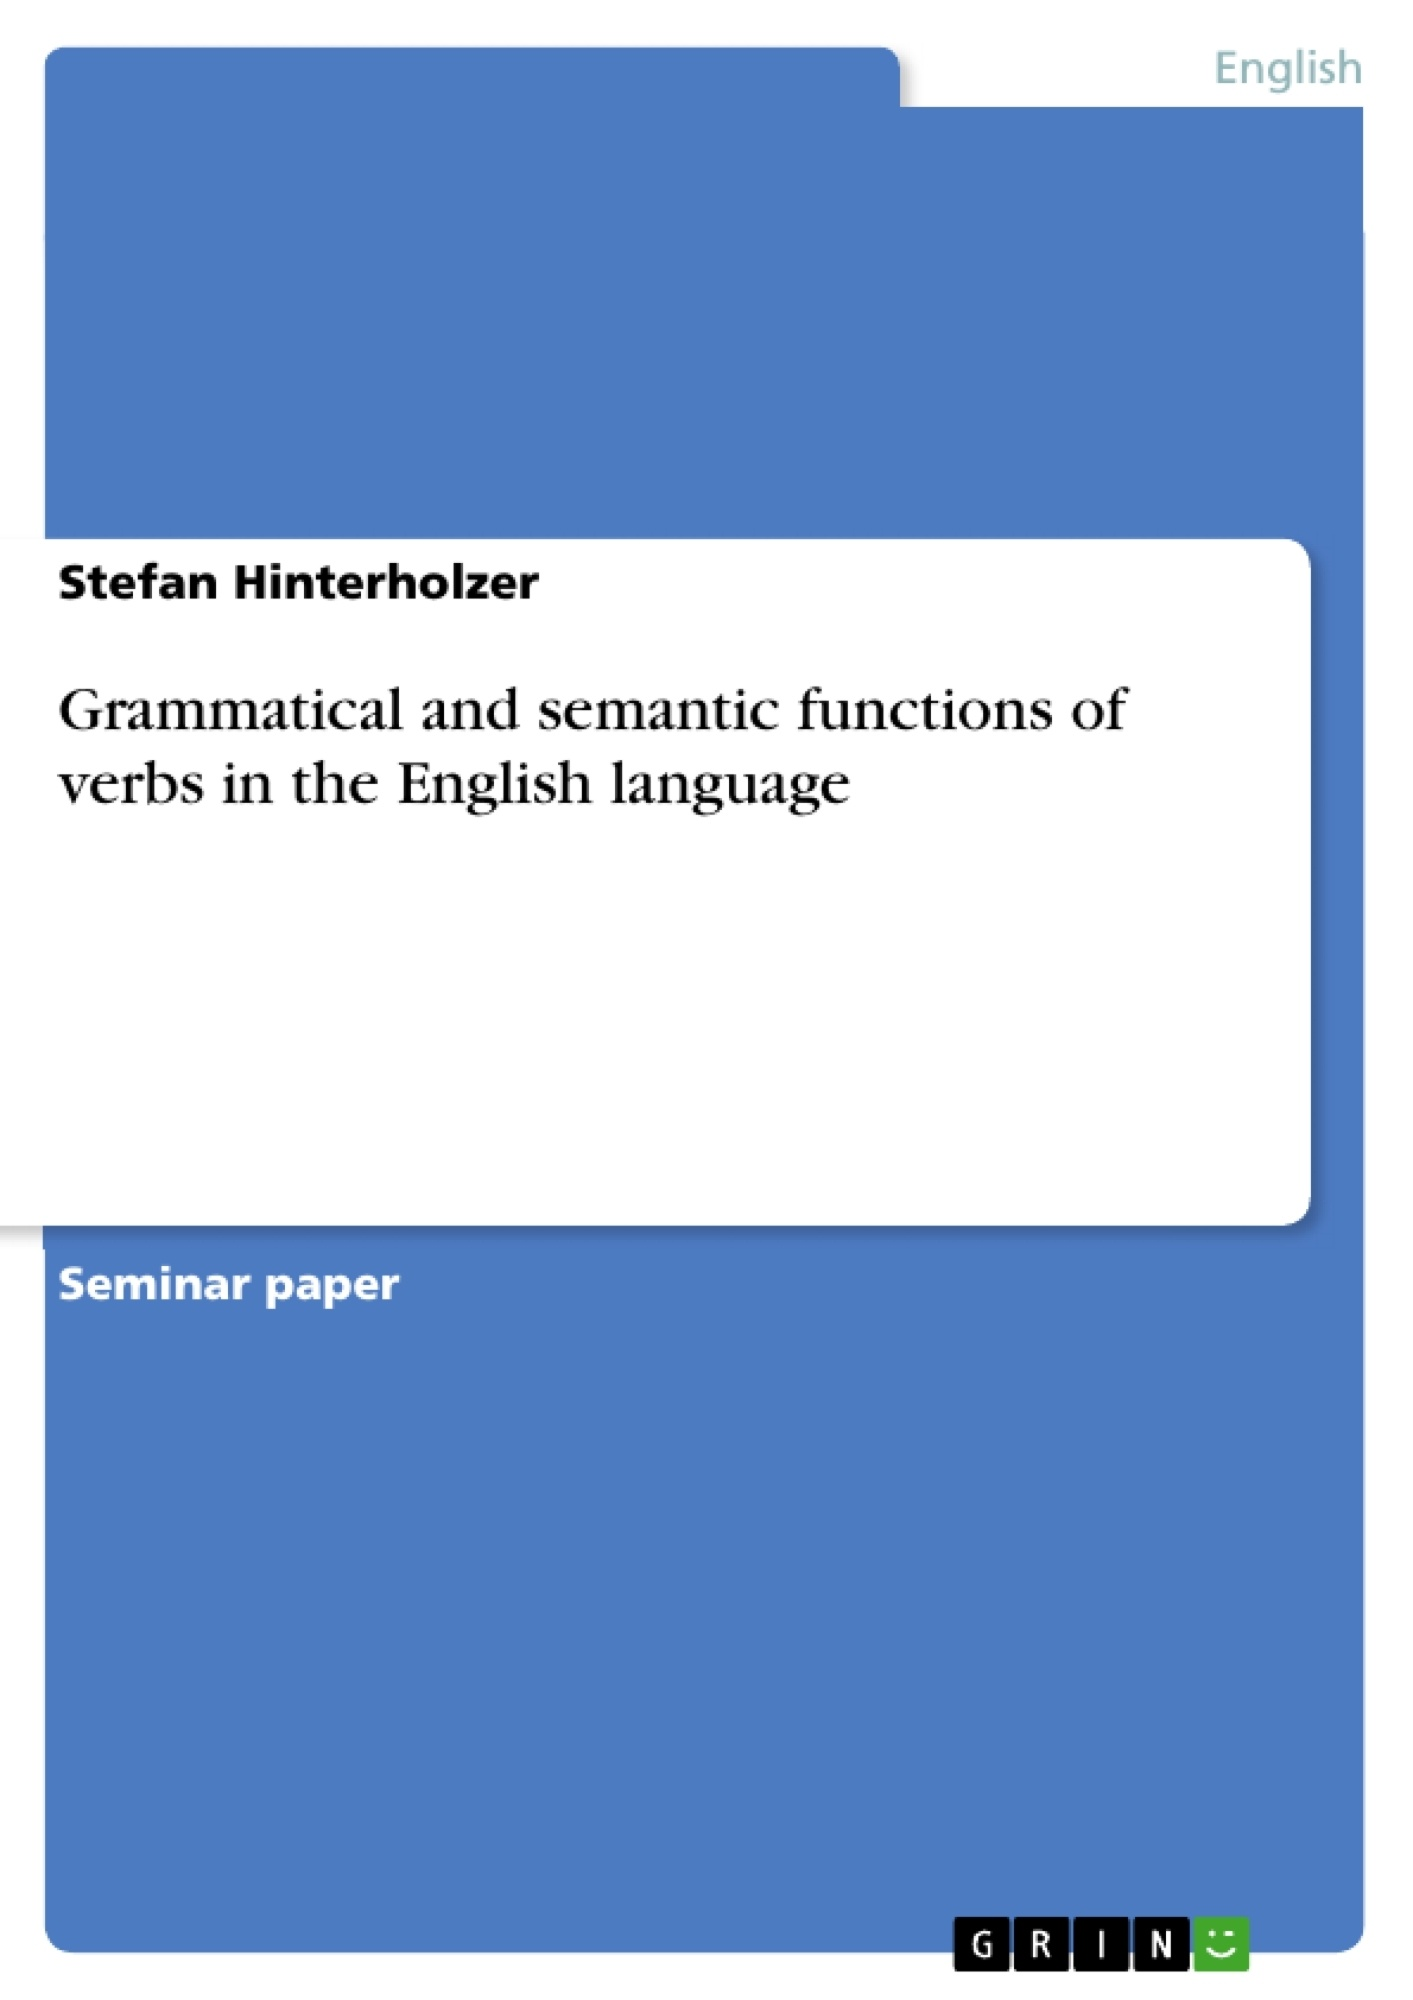 Title: Grammatical and semantic functions of verbs in the English language